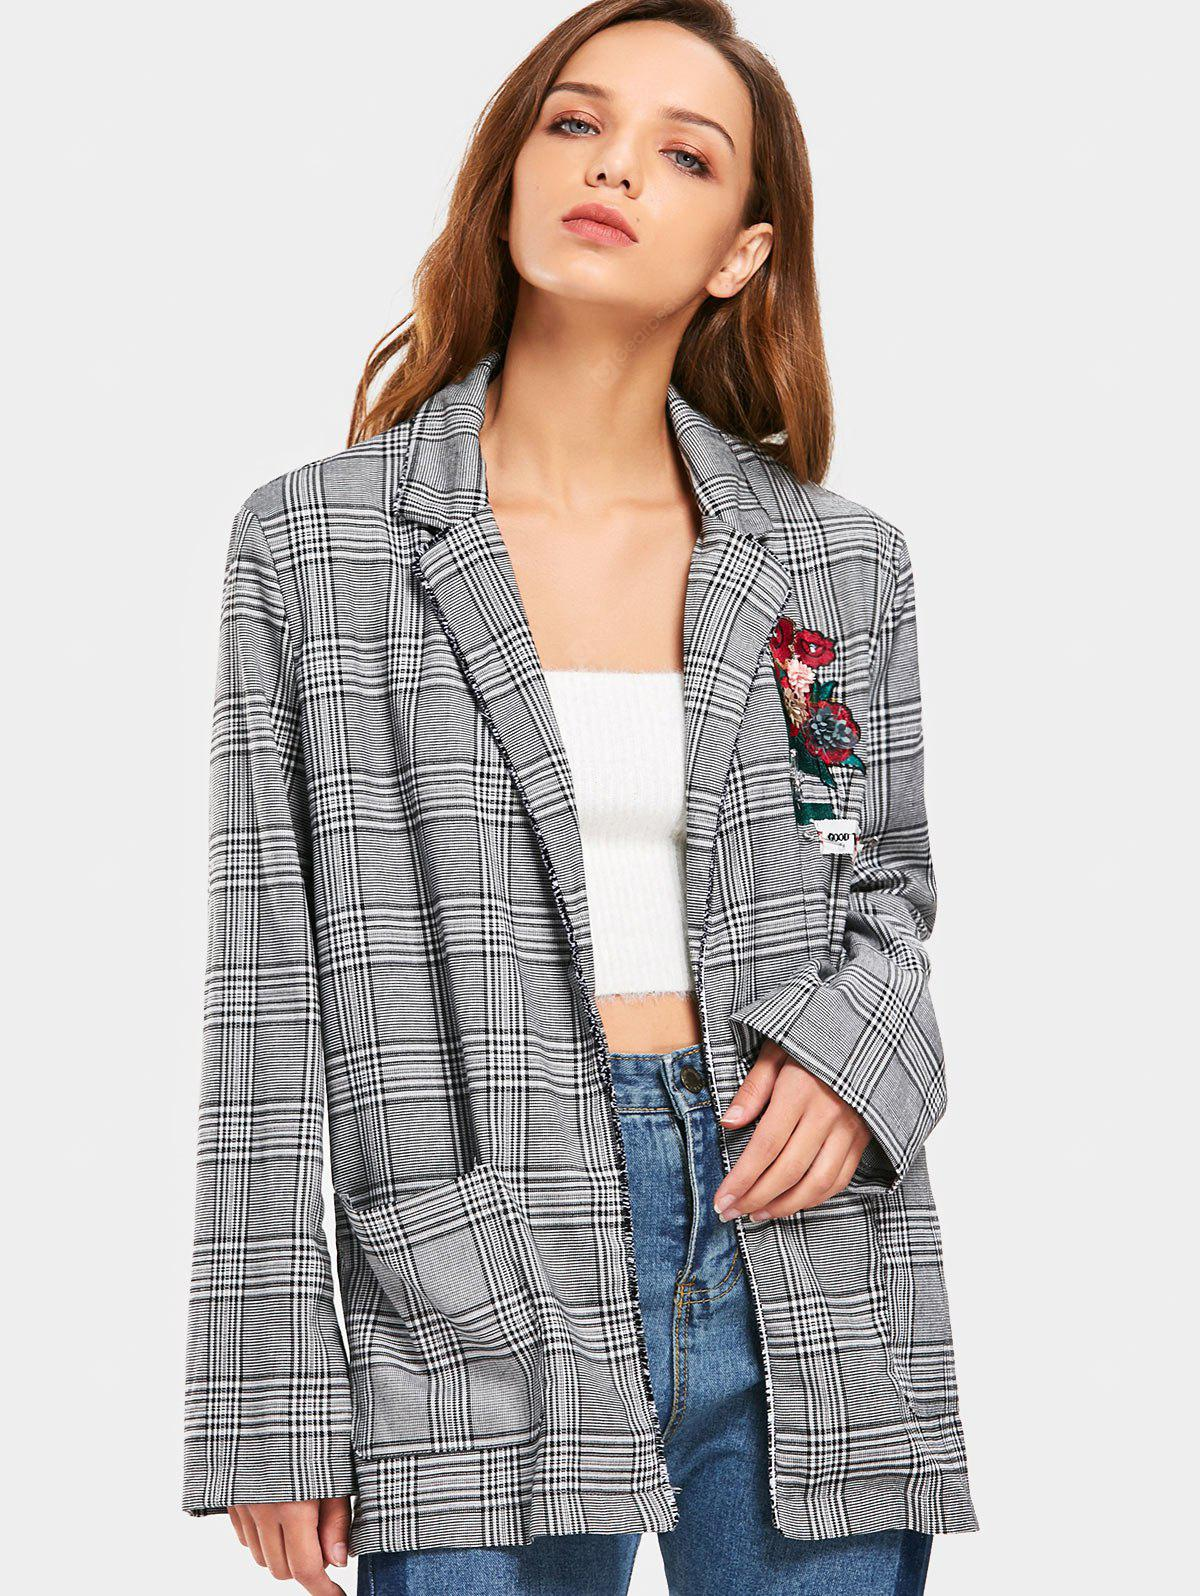 Floral Applique Embroidered Checked Blazer